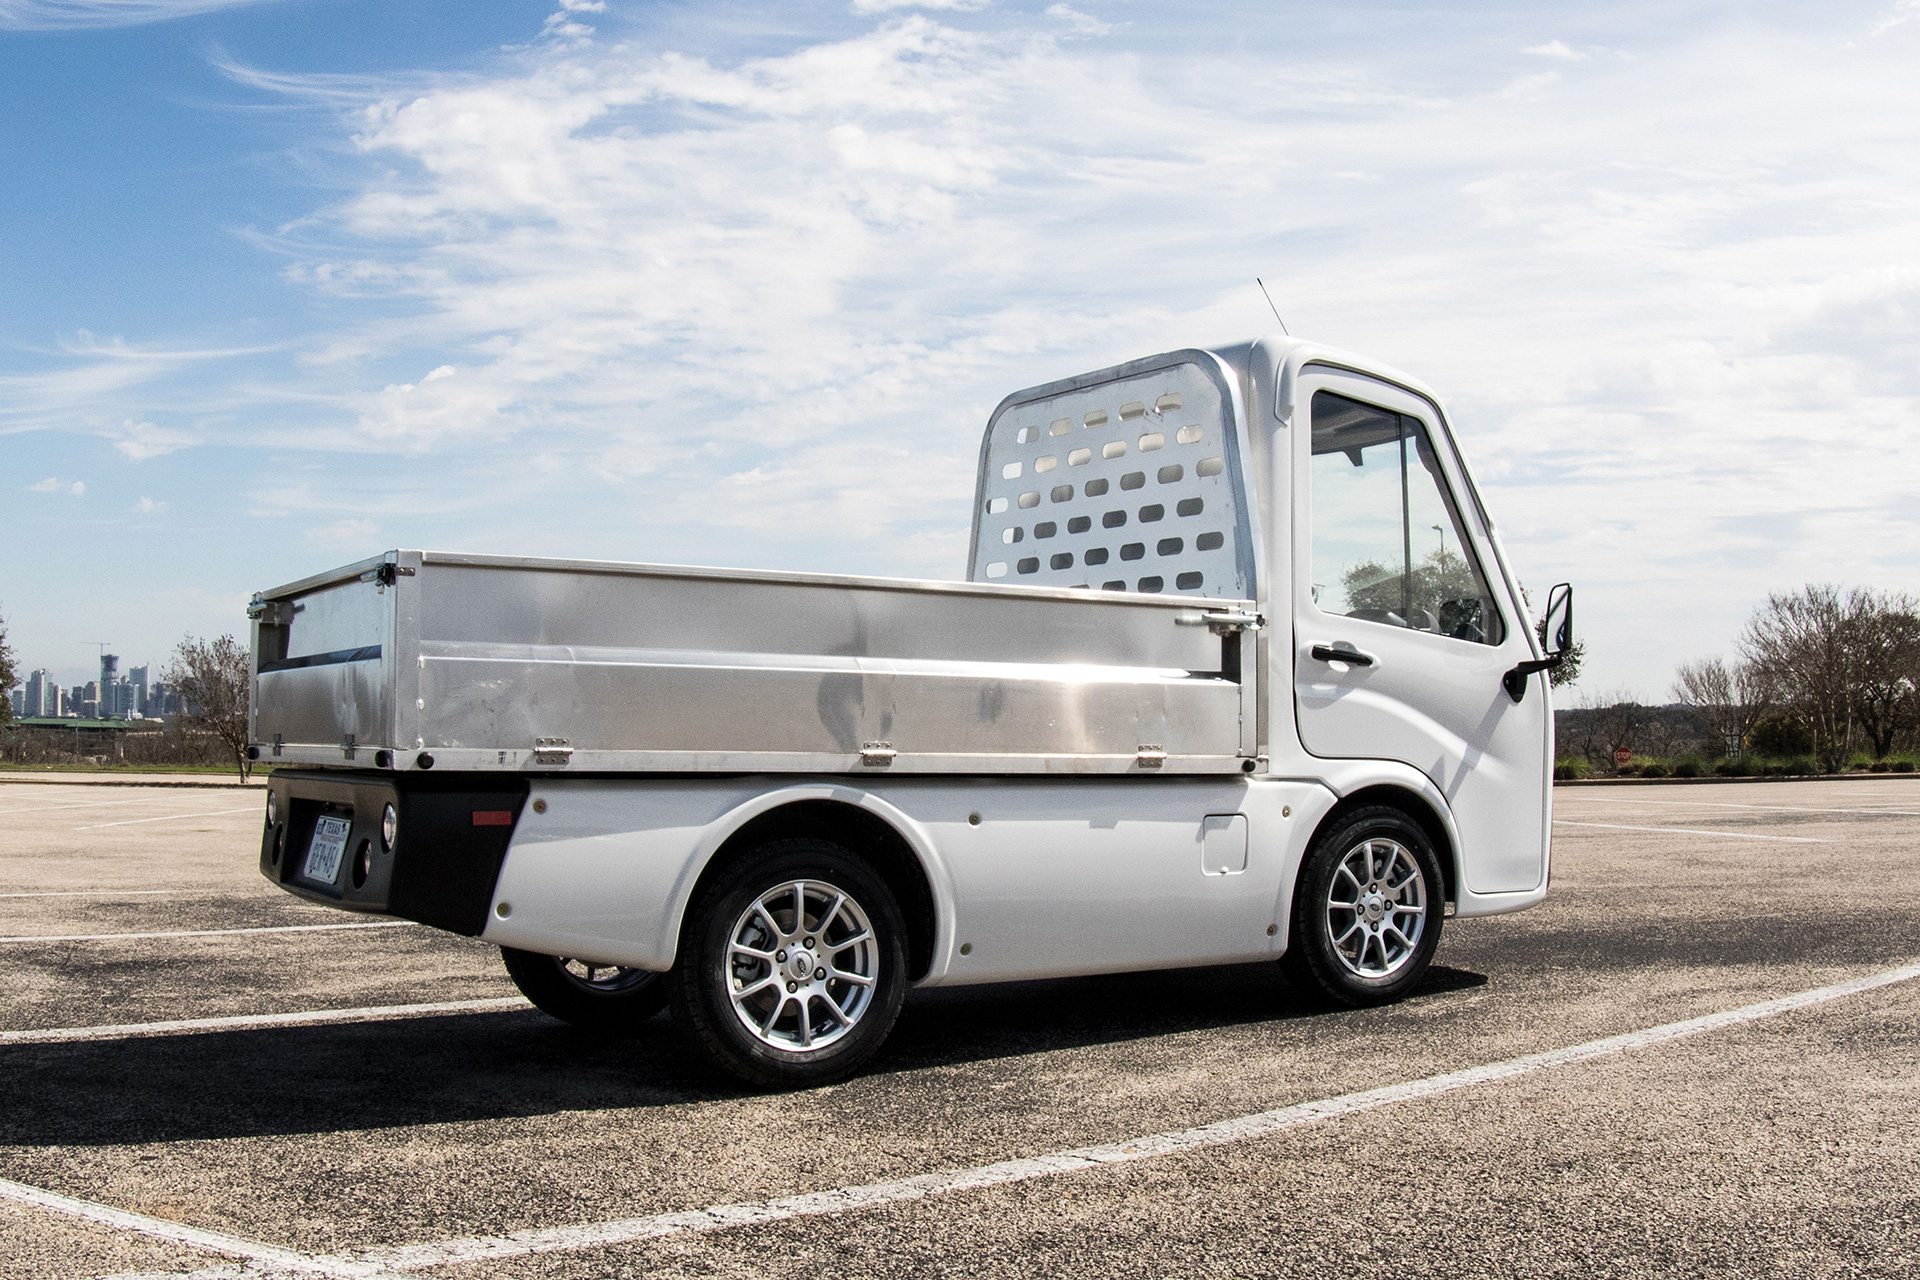 AEV electric last mile transportation vehicle from photoshoot and brand launch